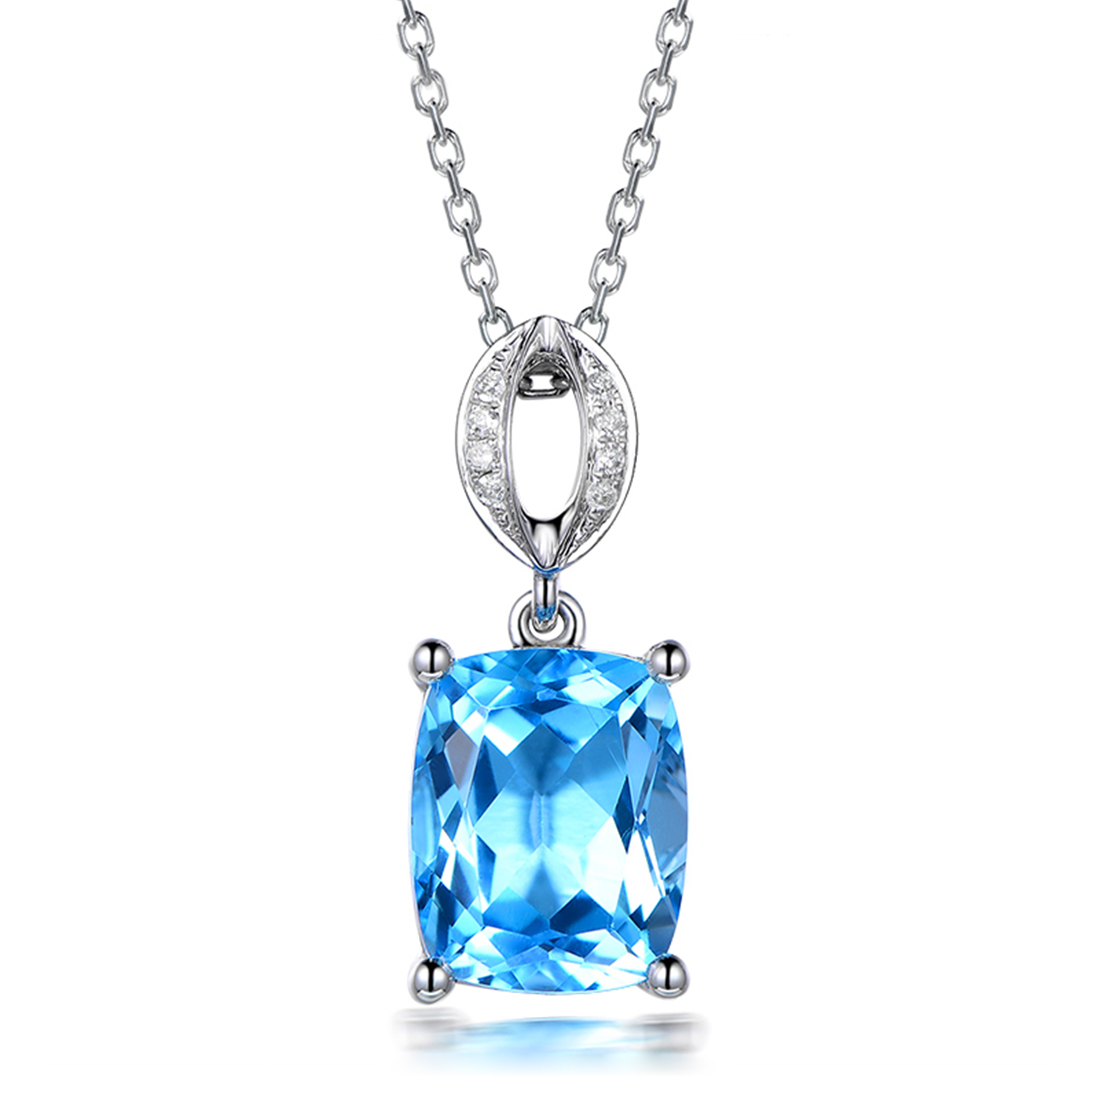 necklace for sapphire blue women dp gemstone caperci light amazon created infinity pendant sterling jewelry com silver